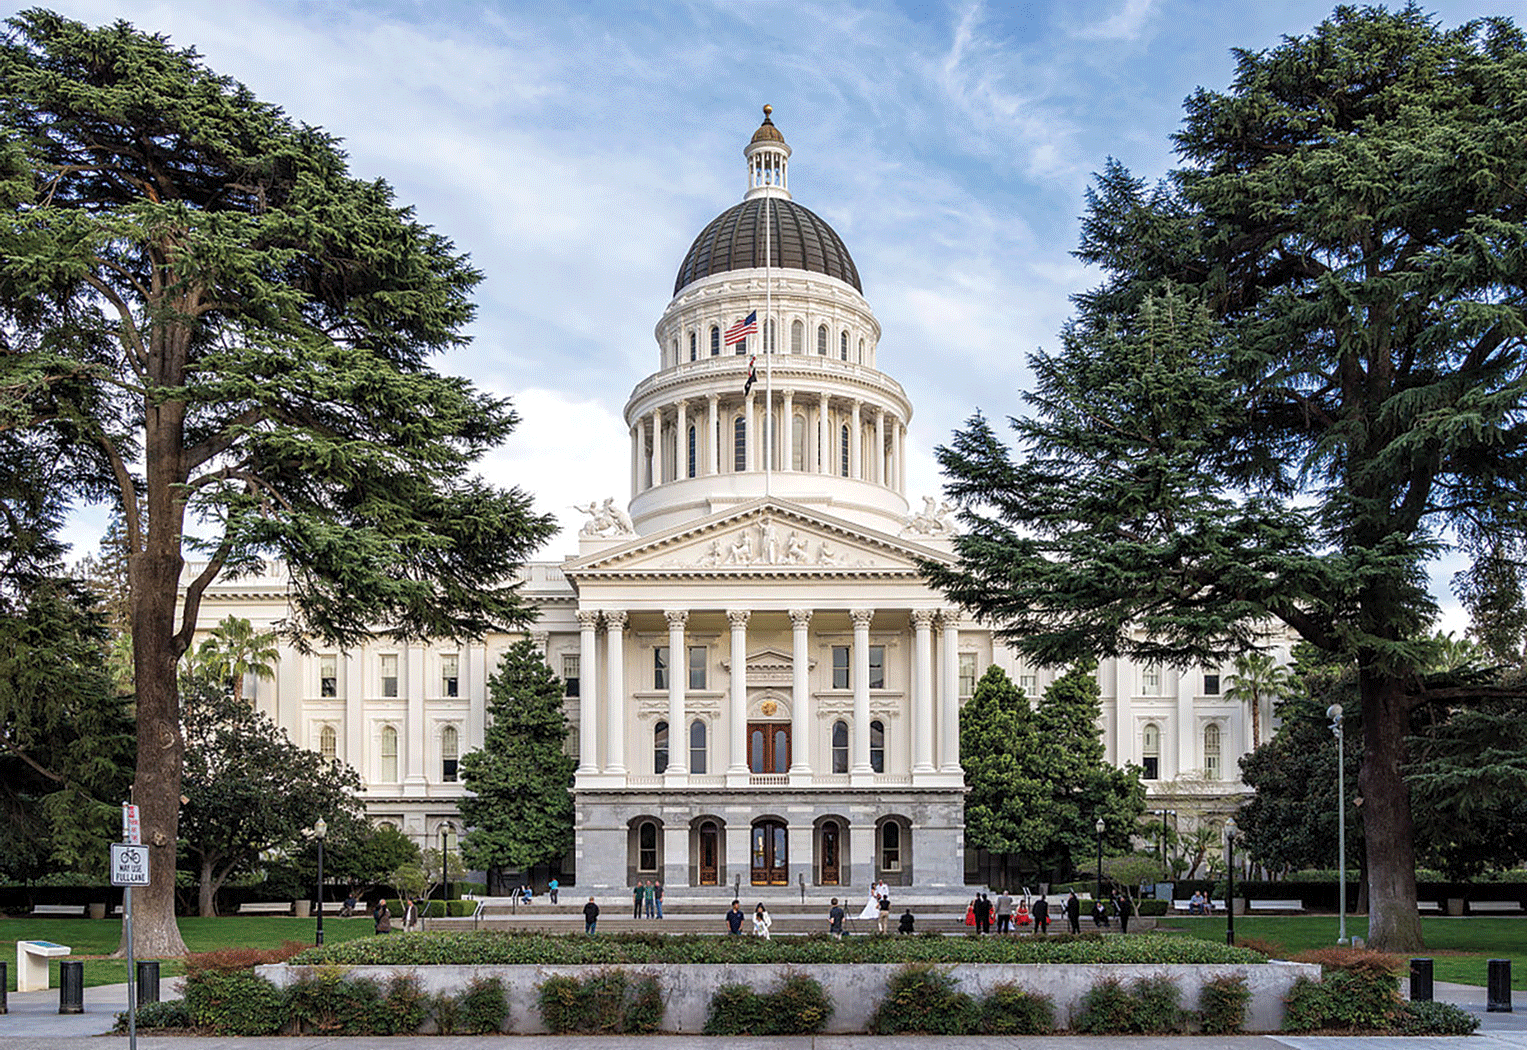 California's 2019-2020 budget has millions for water projects and healthcare programs